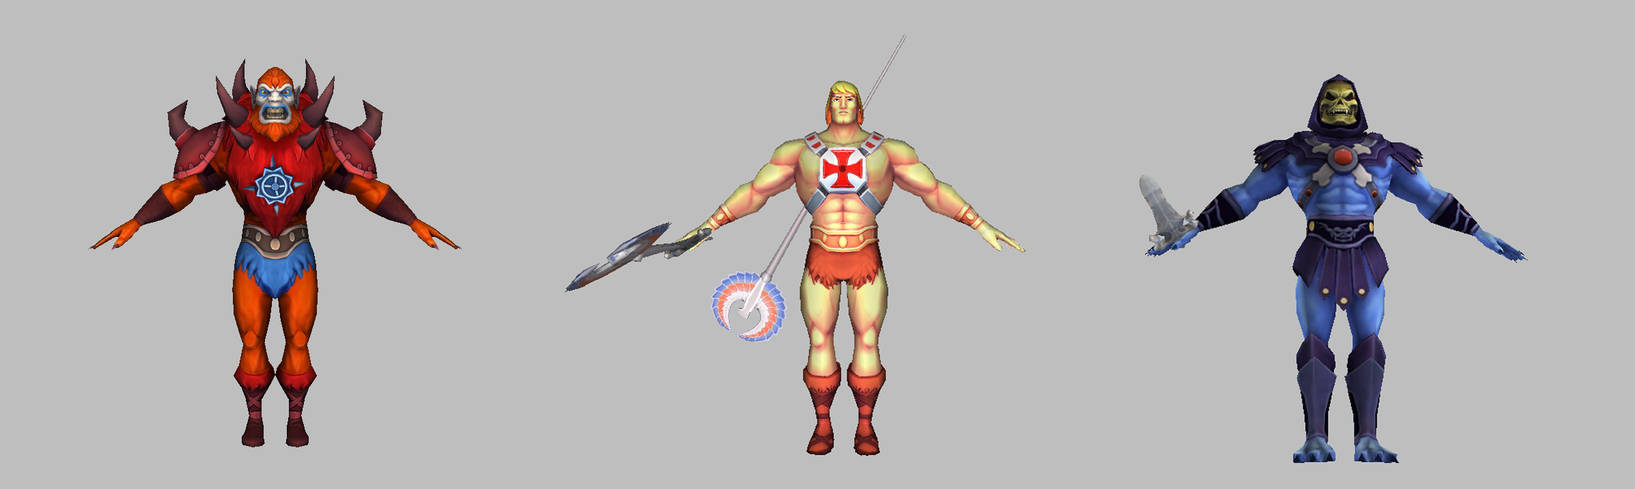 Masters of the Universe VR - Characters